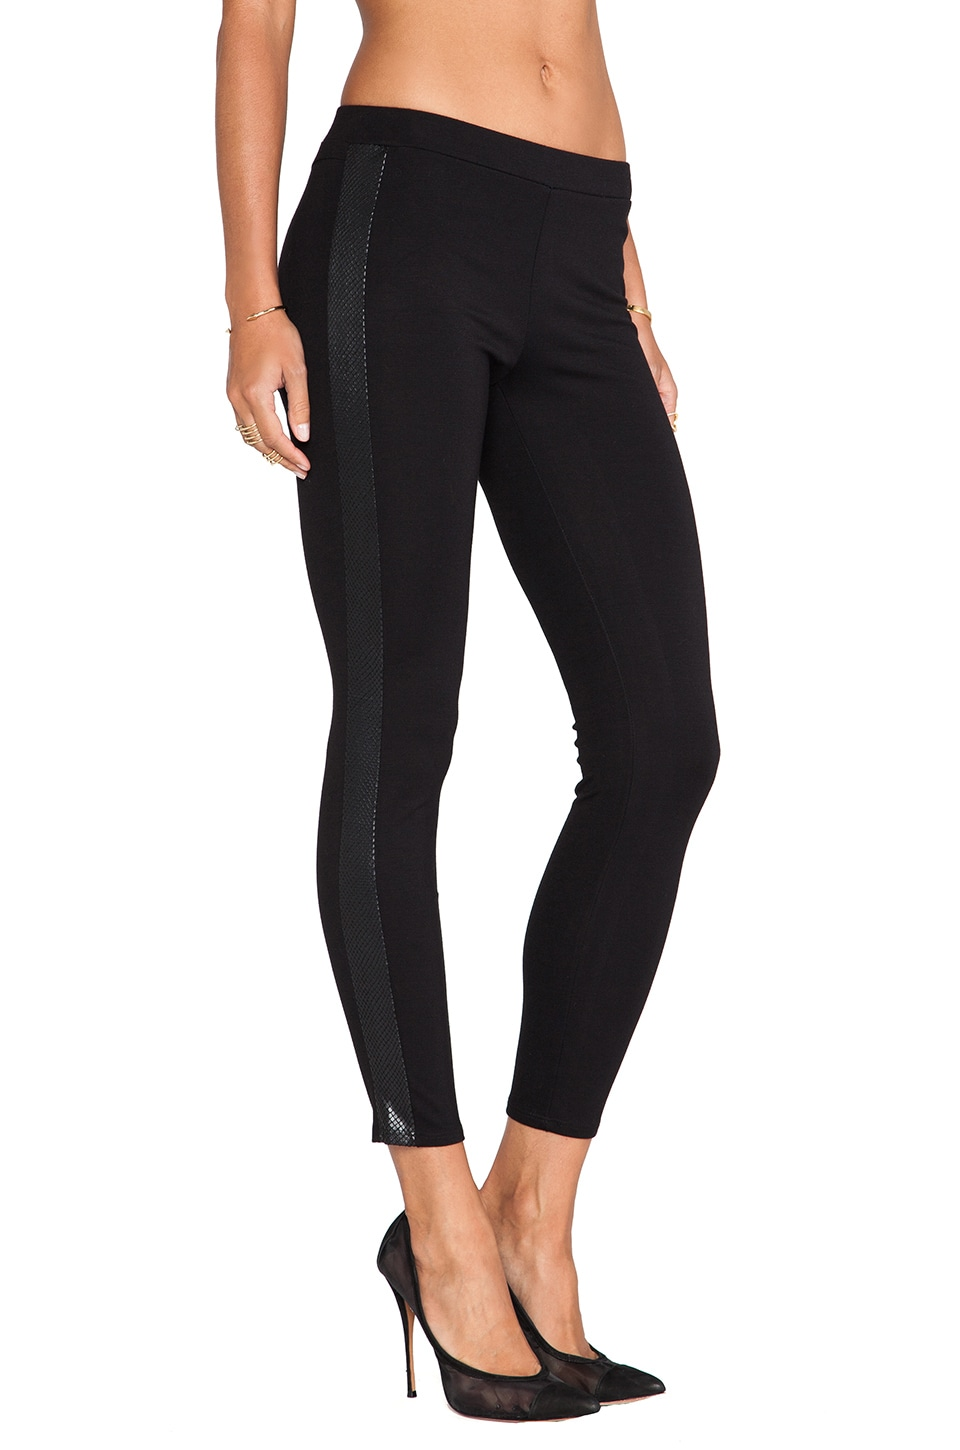 Ella Moss Constance Legging in Black